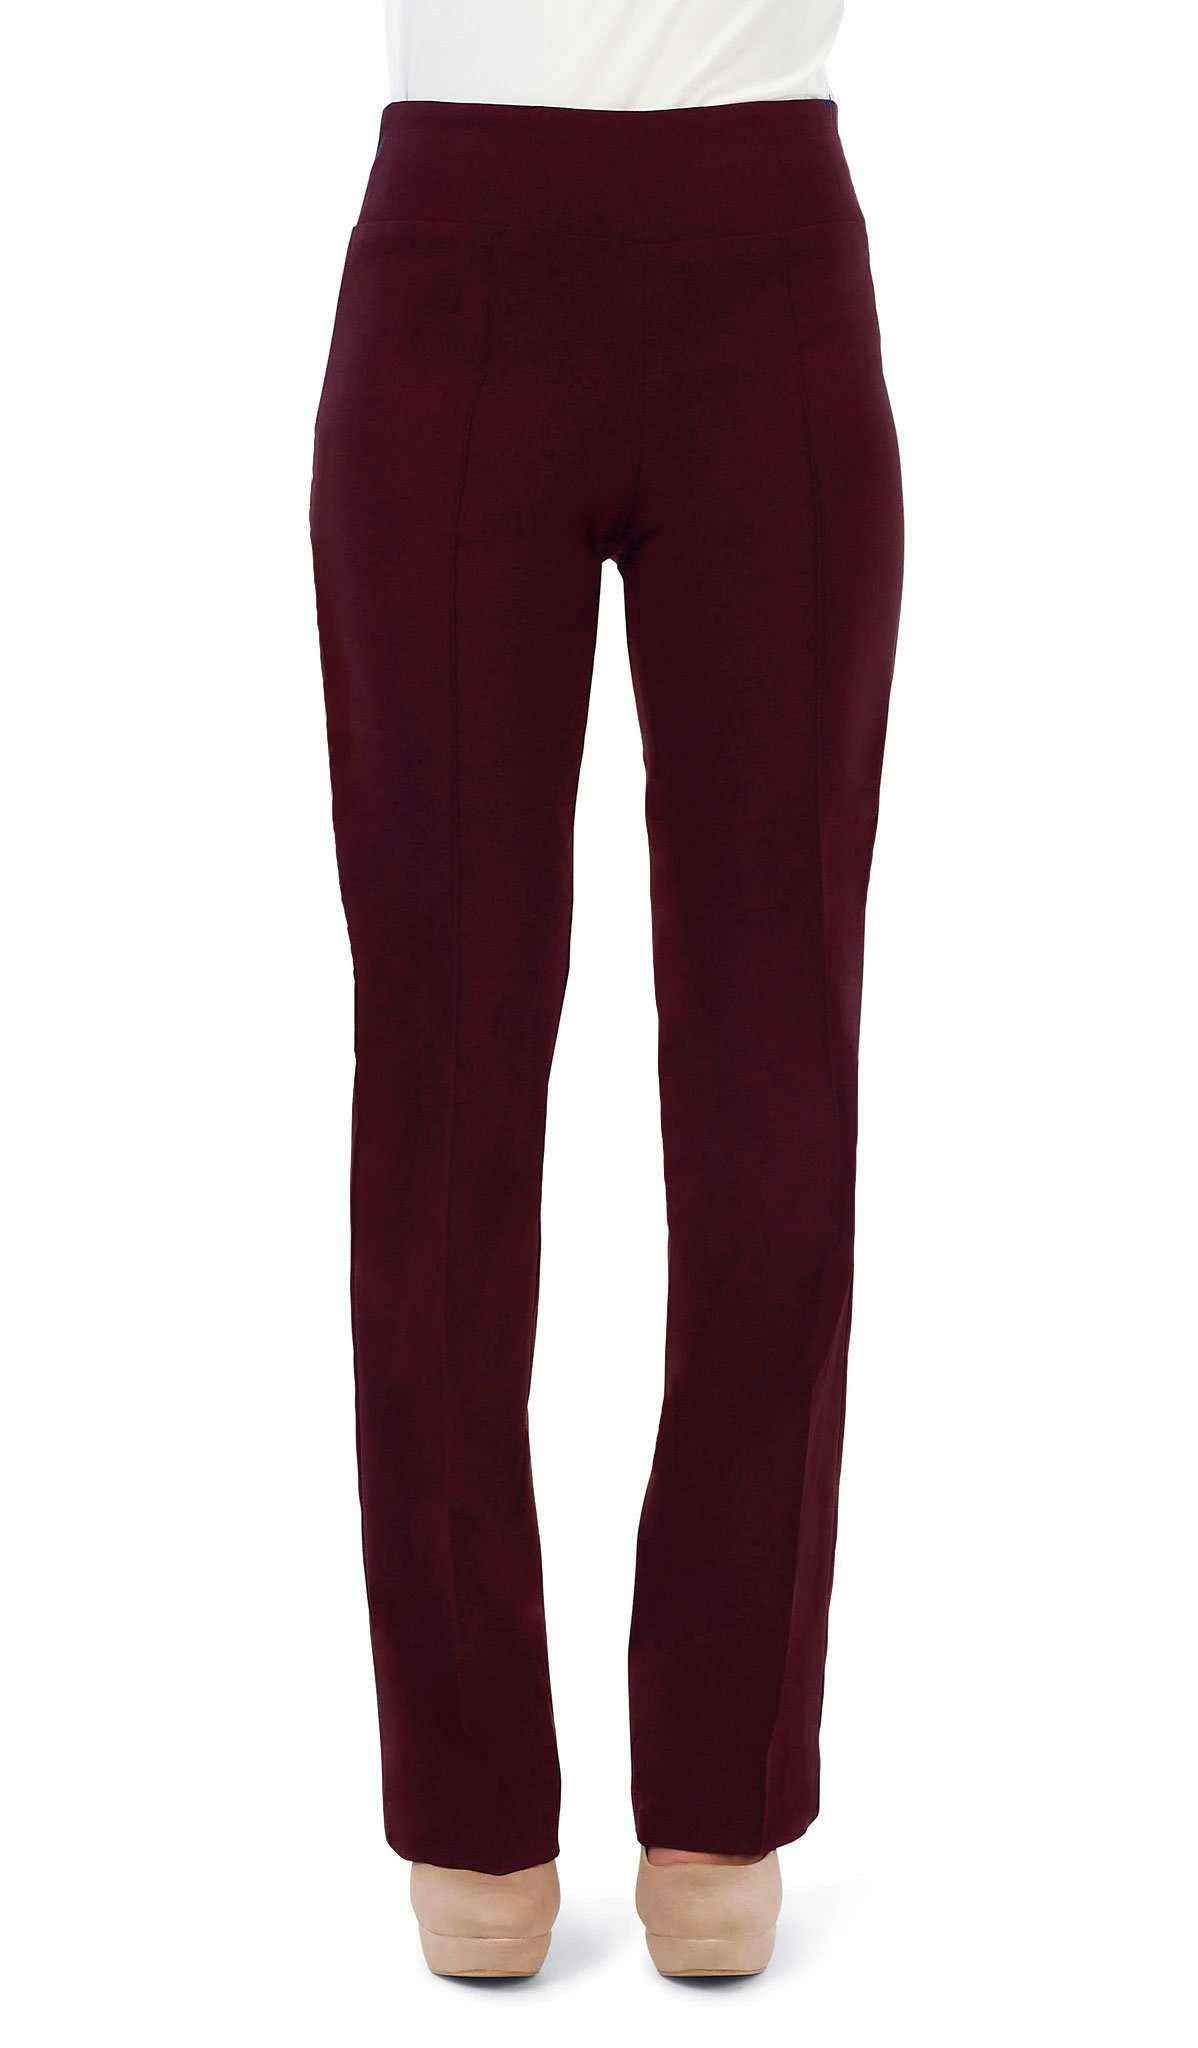 "Women's Pants Wine ""Miracle Fit"" Stretch Pant -Made in Canada - Yvonne Marie - Yvonne Marie"